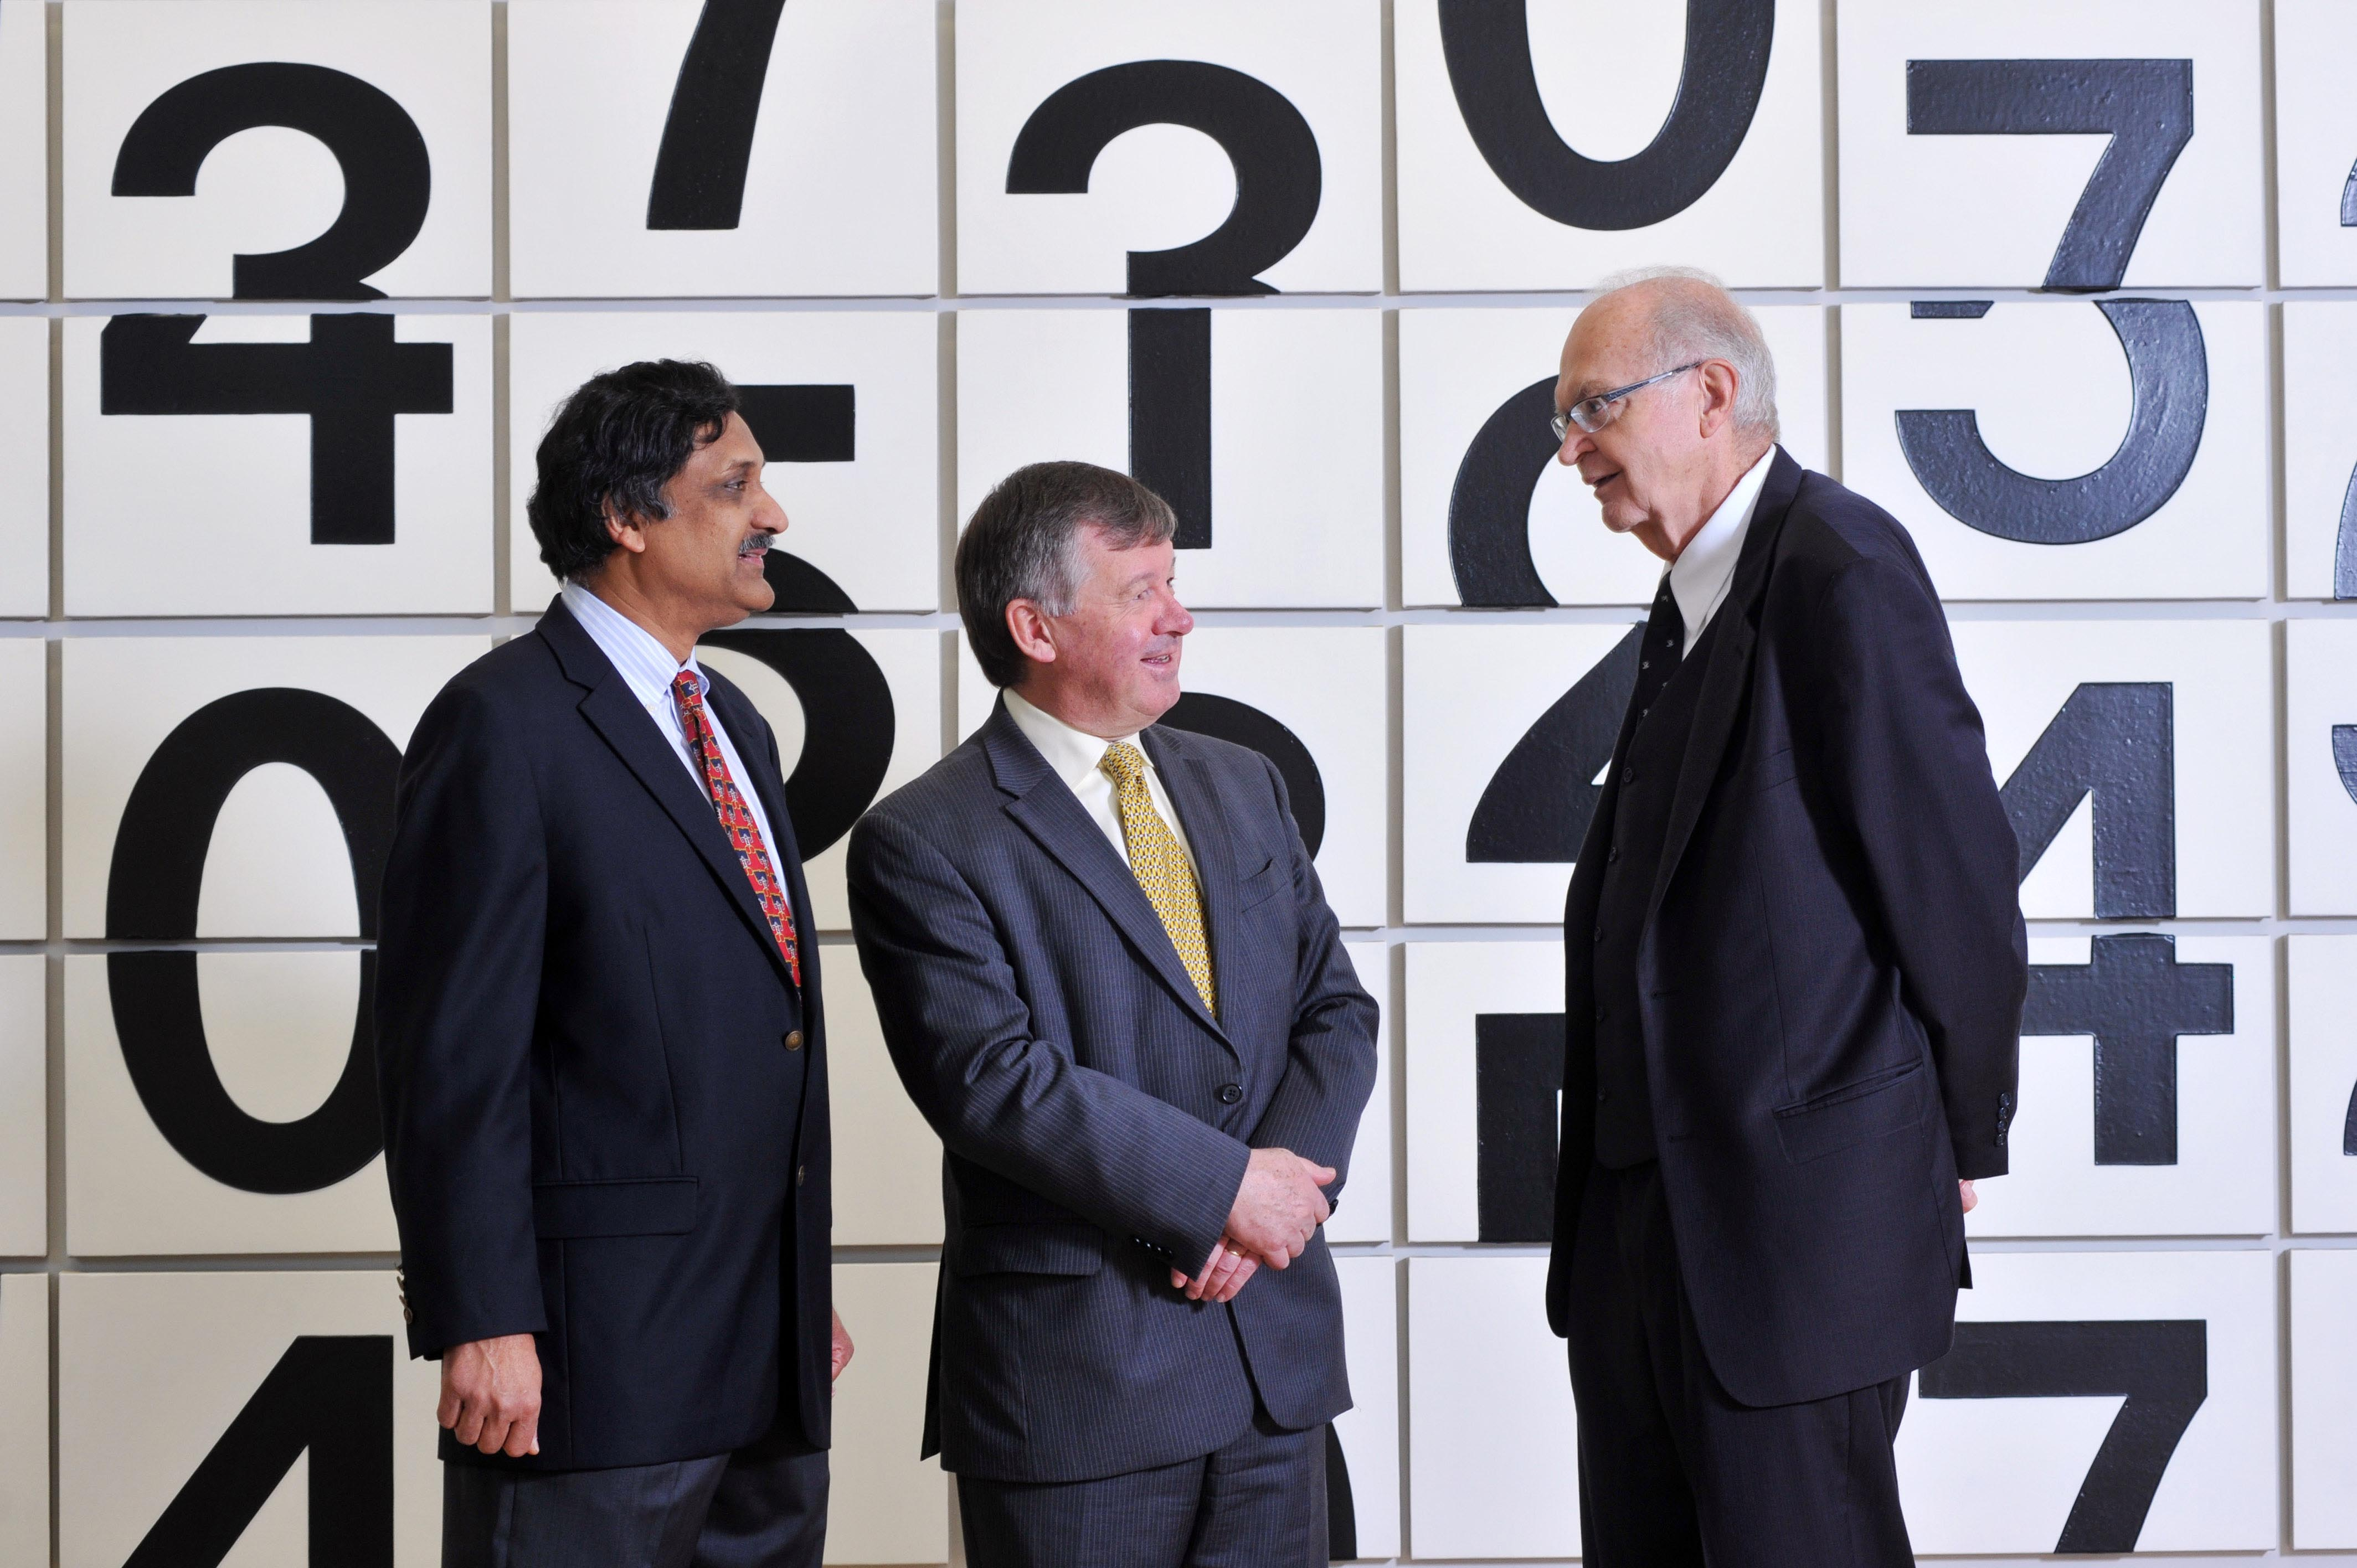 George Boole Day kicks off at UCC - Anant Agarwal, CEO of edX; President of UCC Dr Michael Murphy and American computing pioneer Donald Knuth pictured in the Glucksman Gallery, UCC, Cork at a panel discussion on what George Boole means to them. Pic Daragh Mc Sweeney/Provision